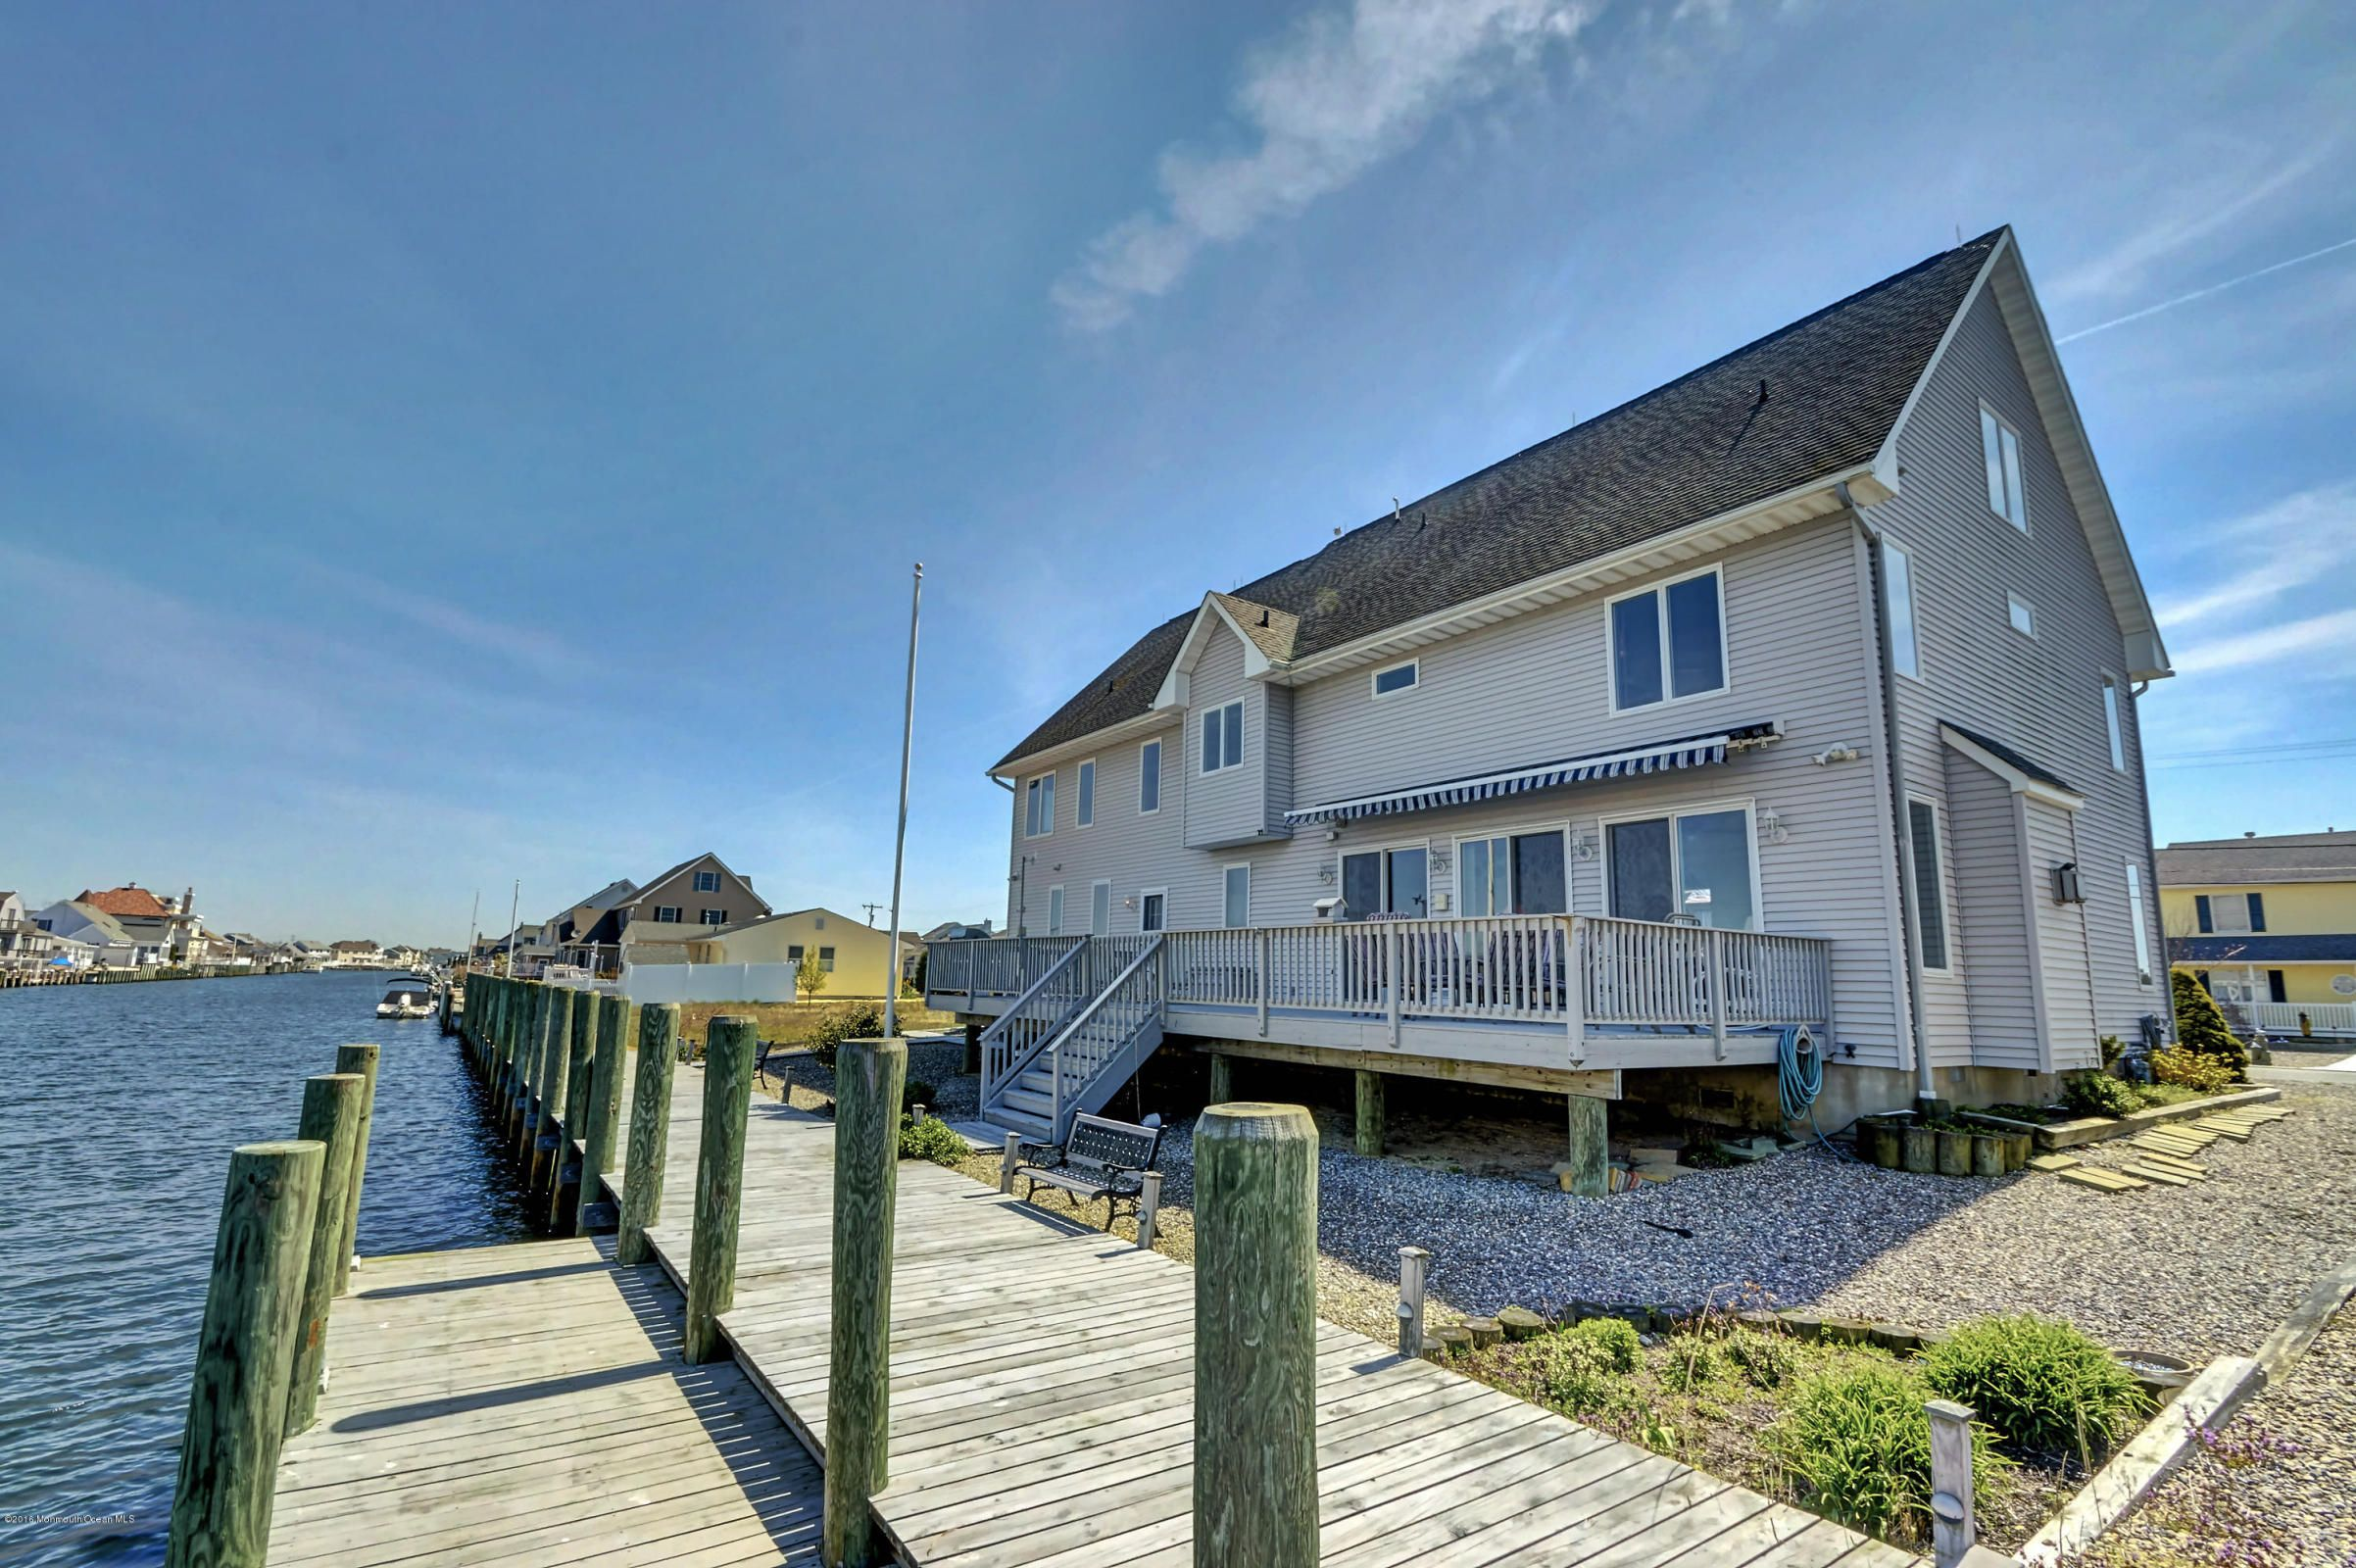 Forked river waterfront home for sale waterfront homes